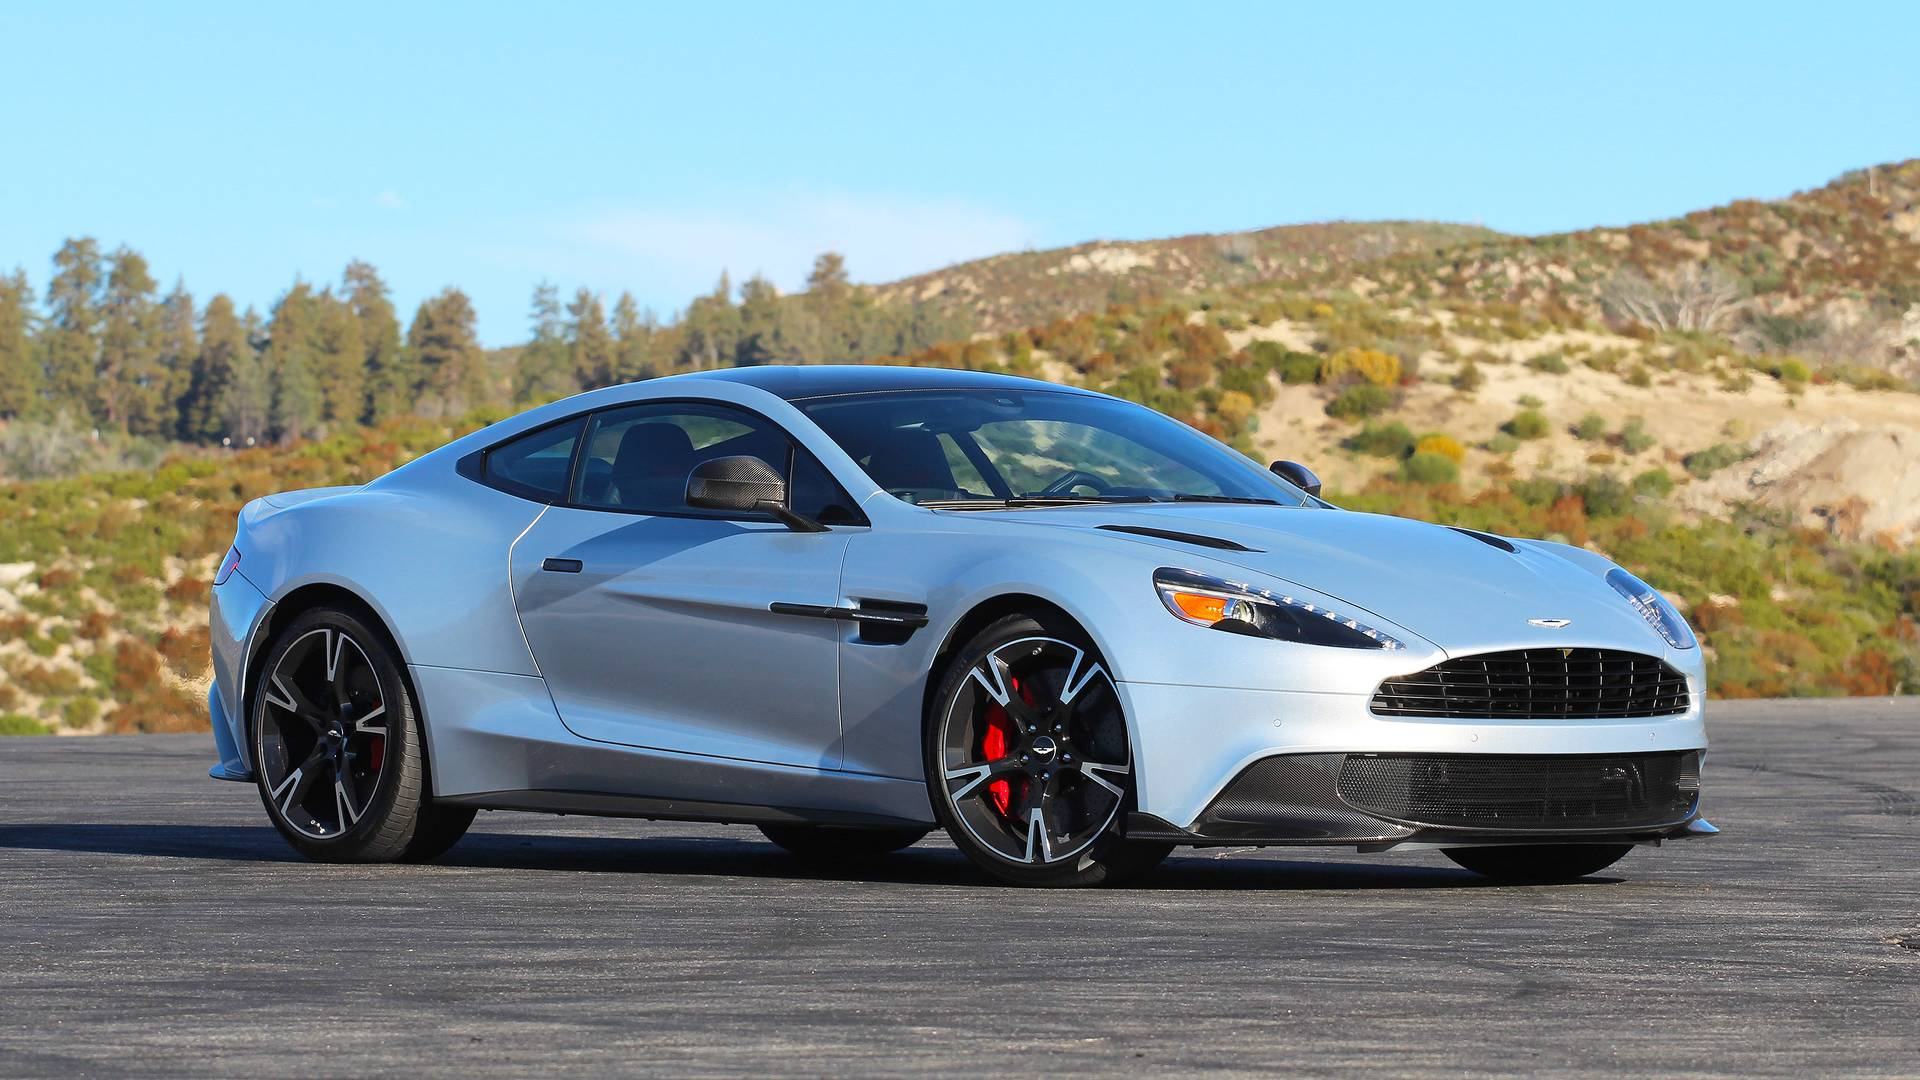 Aston Martin Vanquish S Coupe Review Going Out With A Bang - Aston martin vanquish coupe